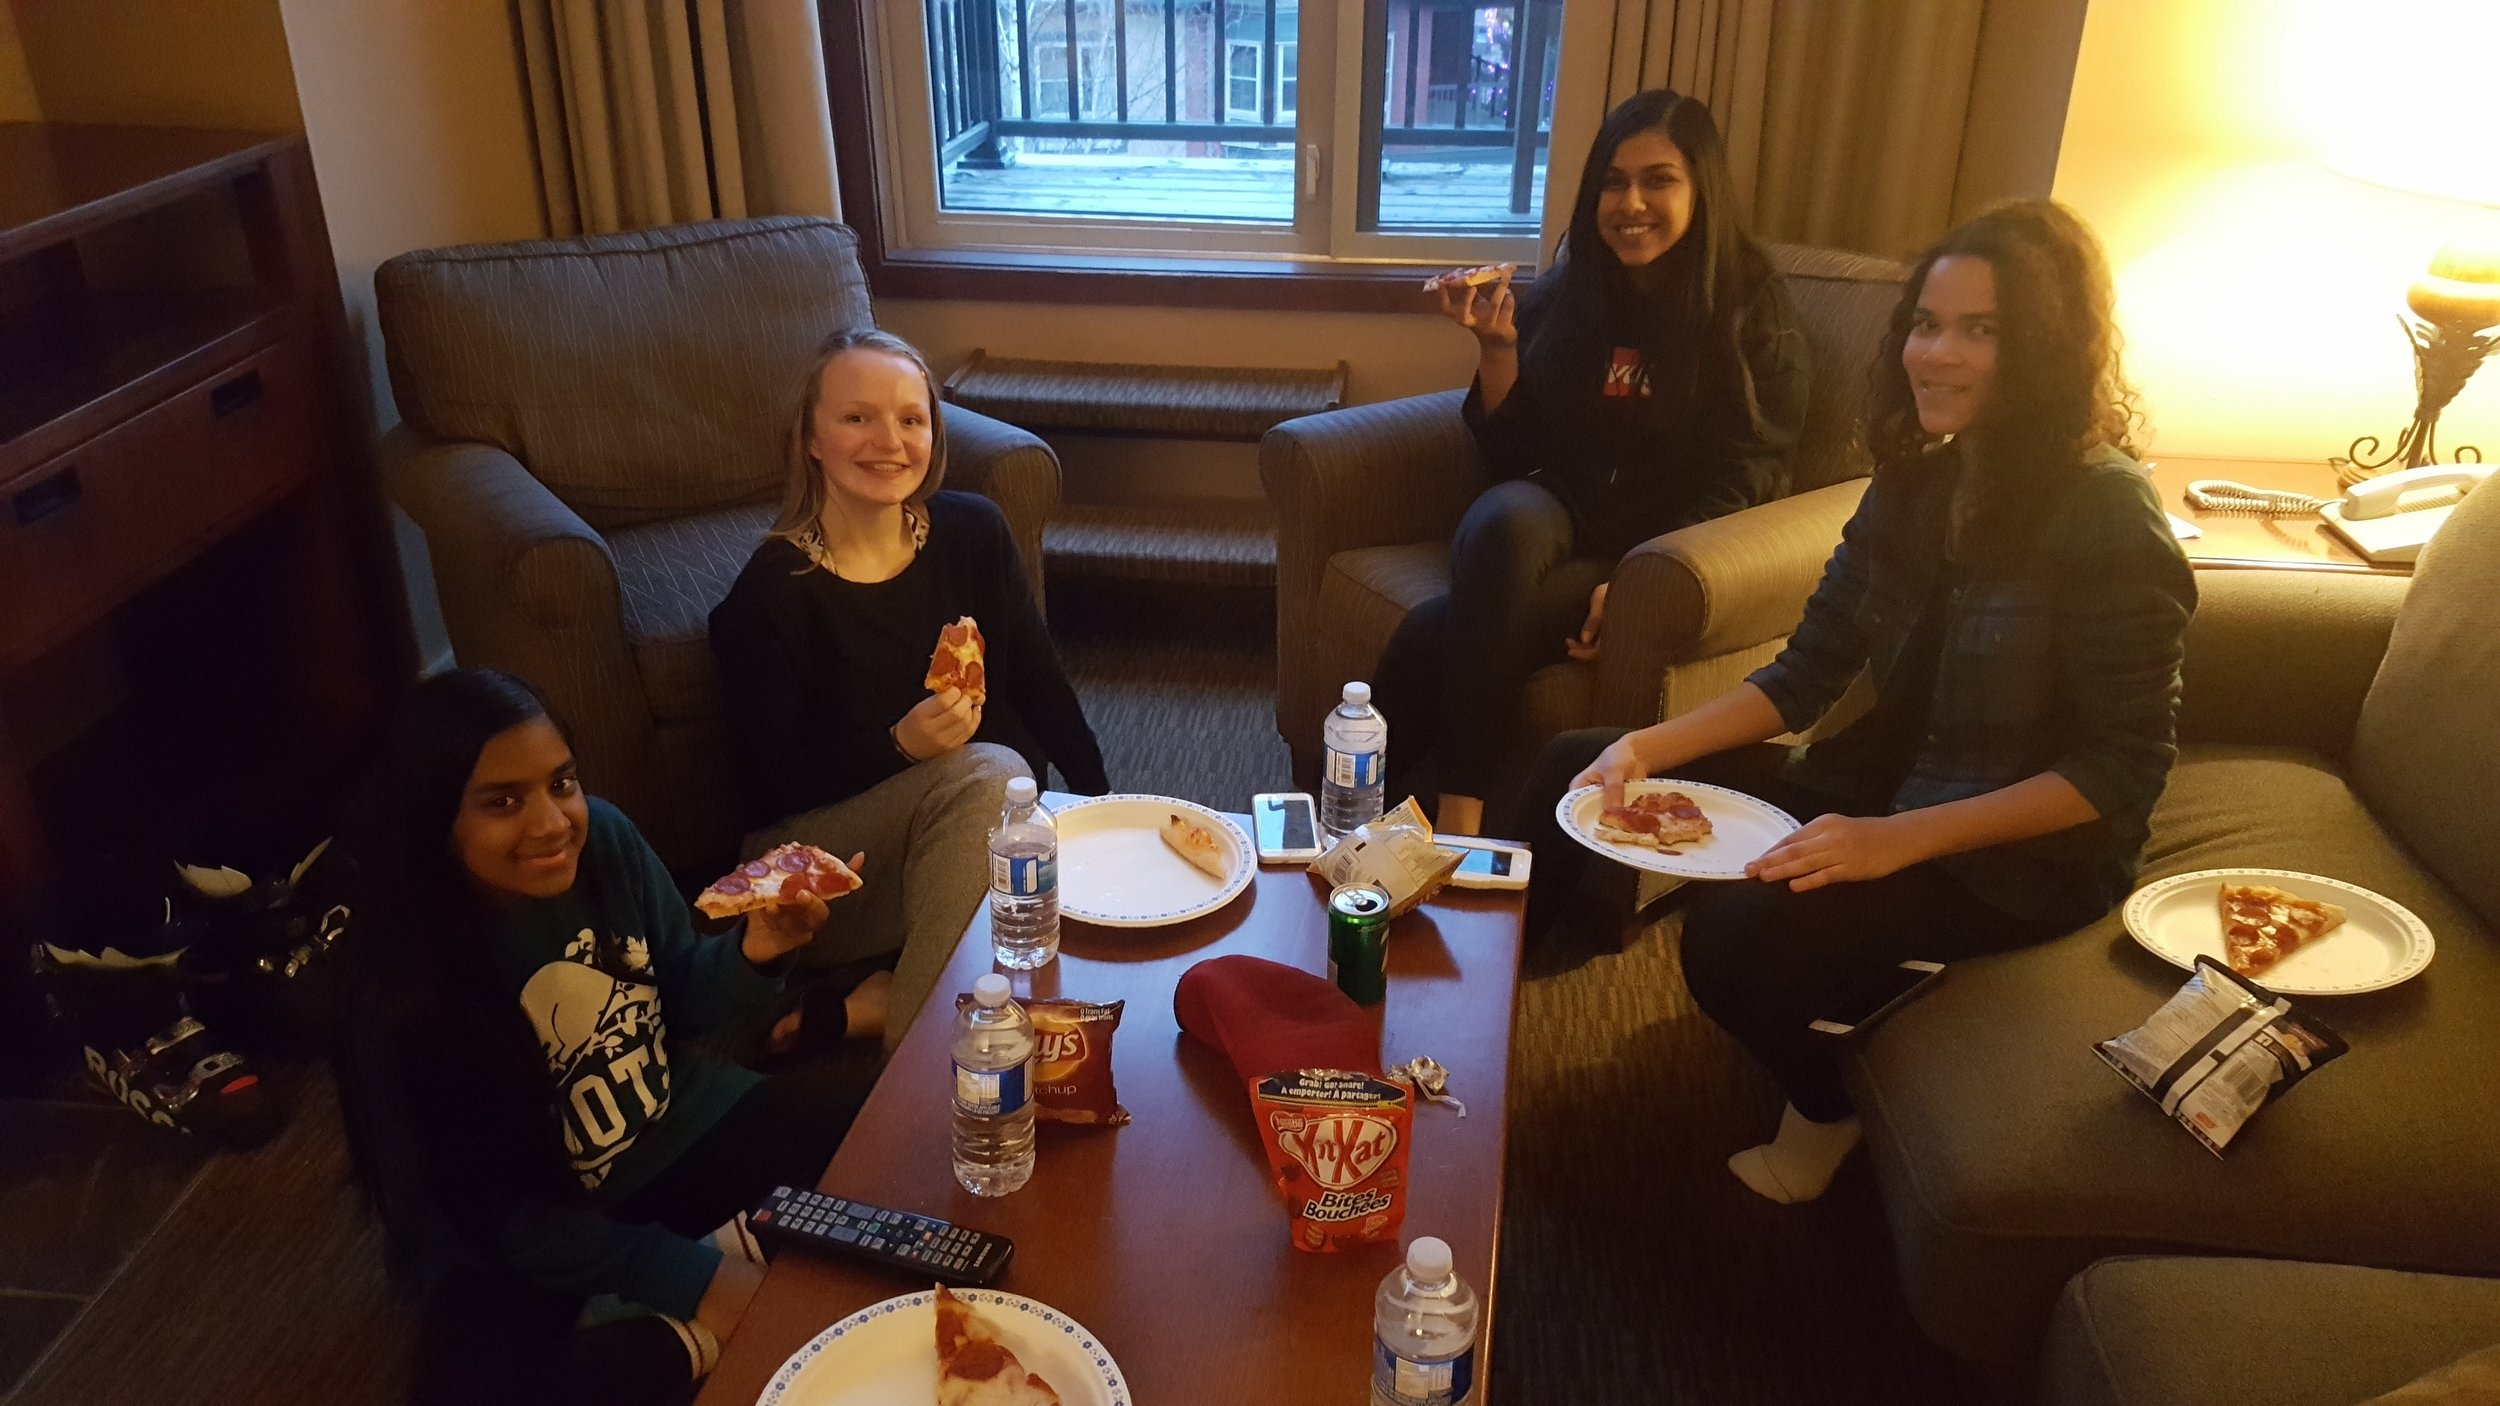 Pizza in their suites tonight!